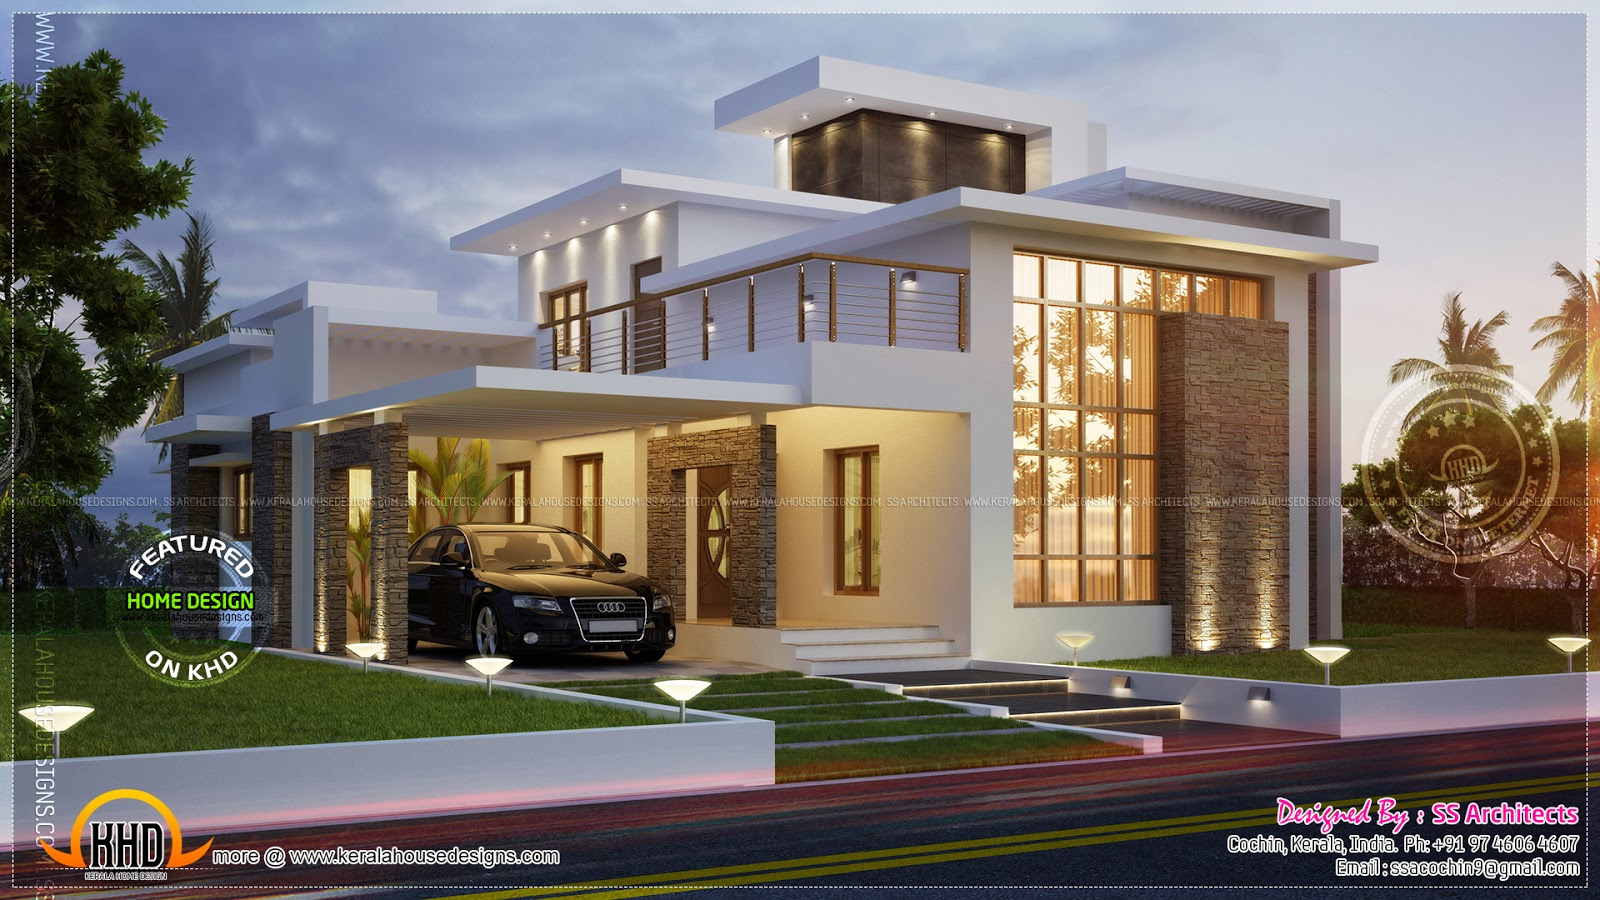 Awesome 3000 sq feet contemporary house Kerala home design and floor plans